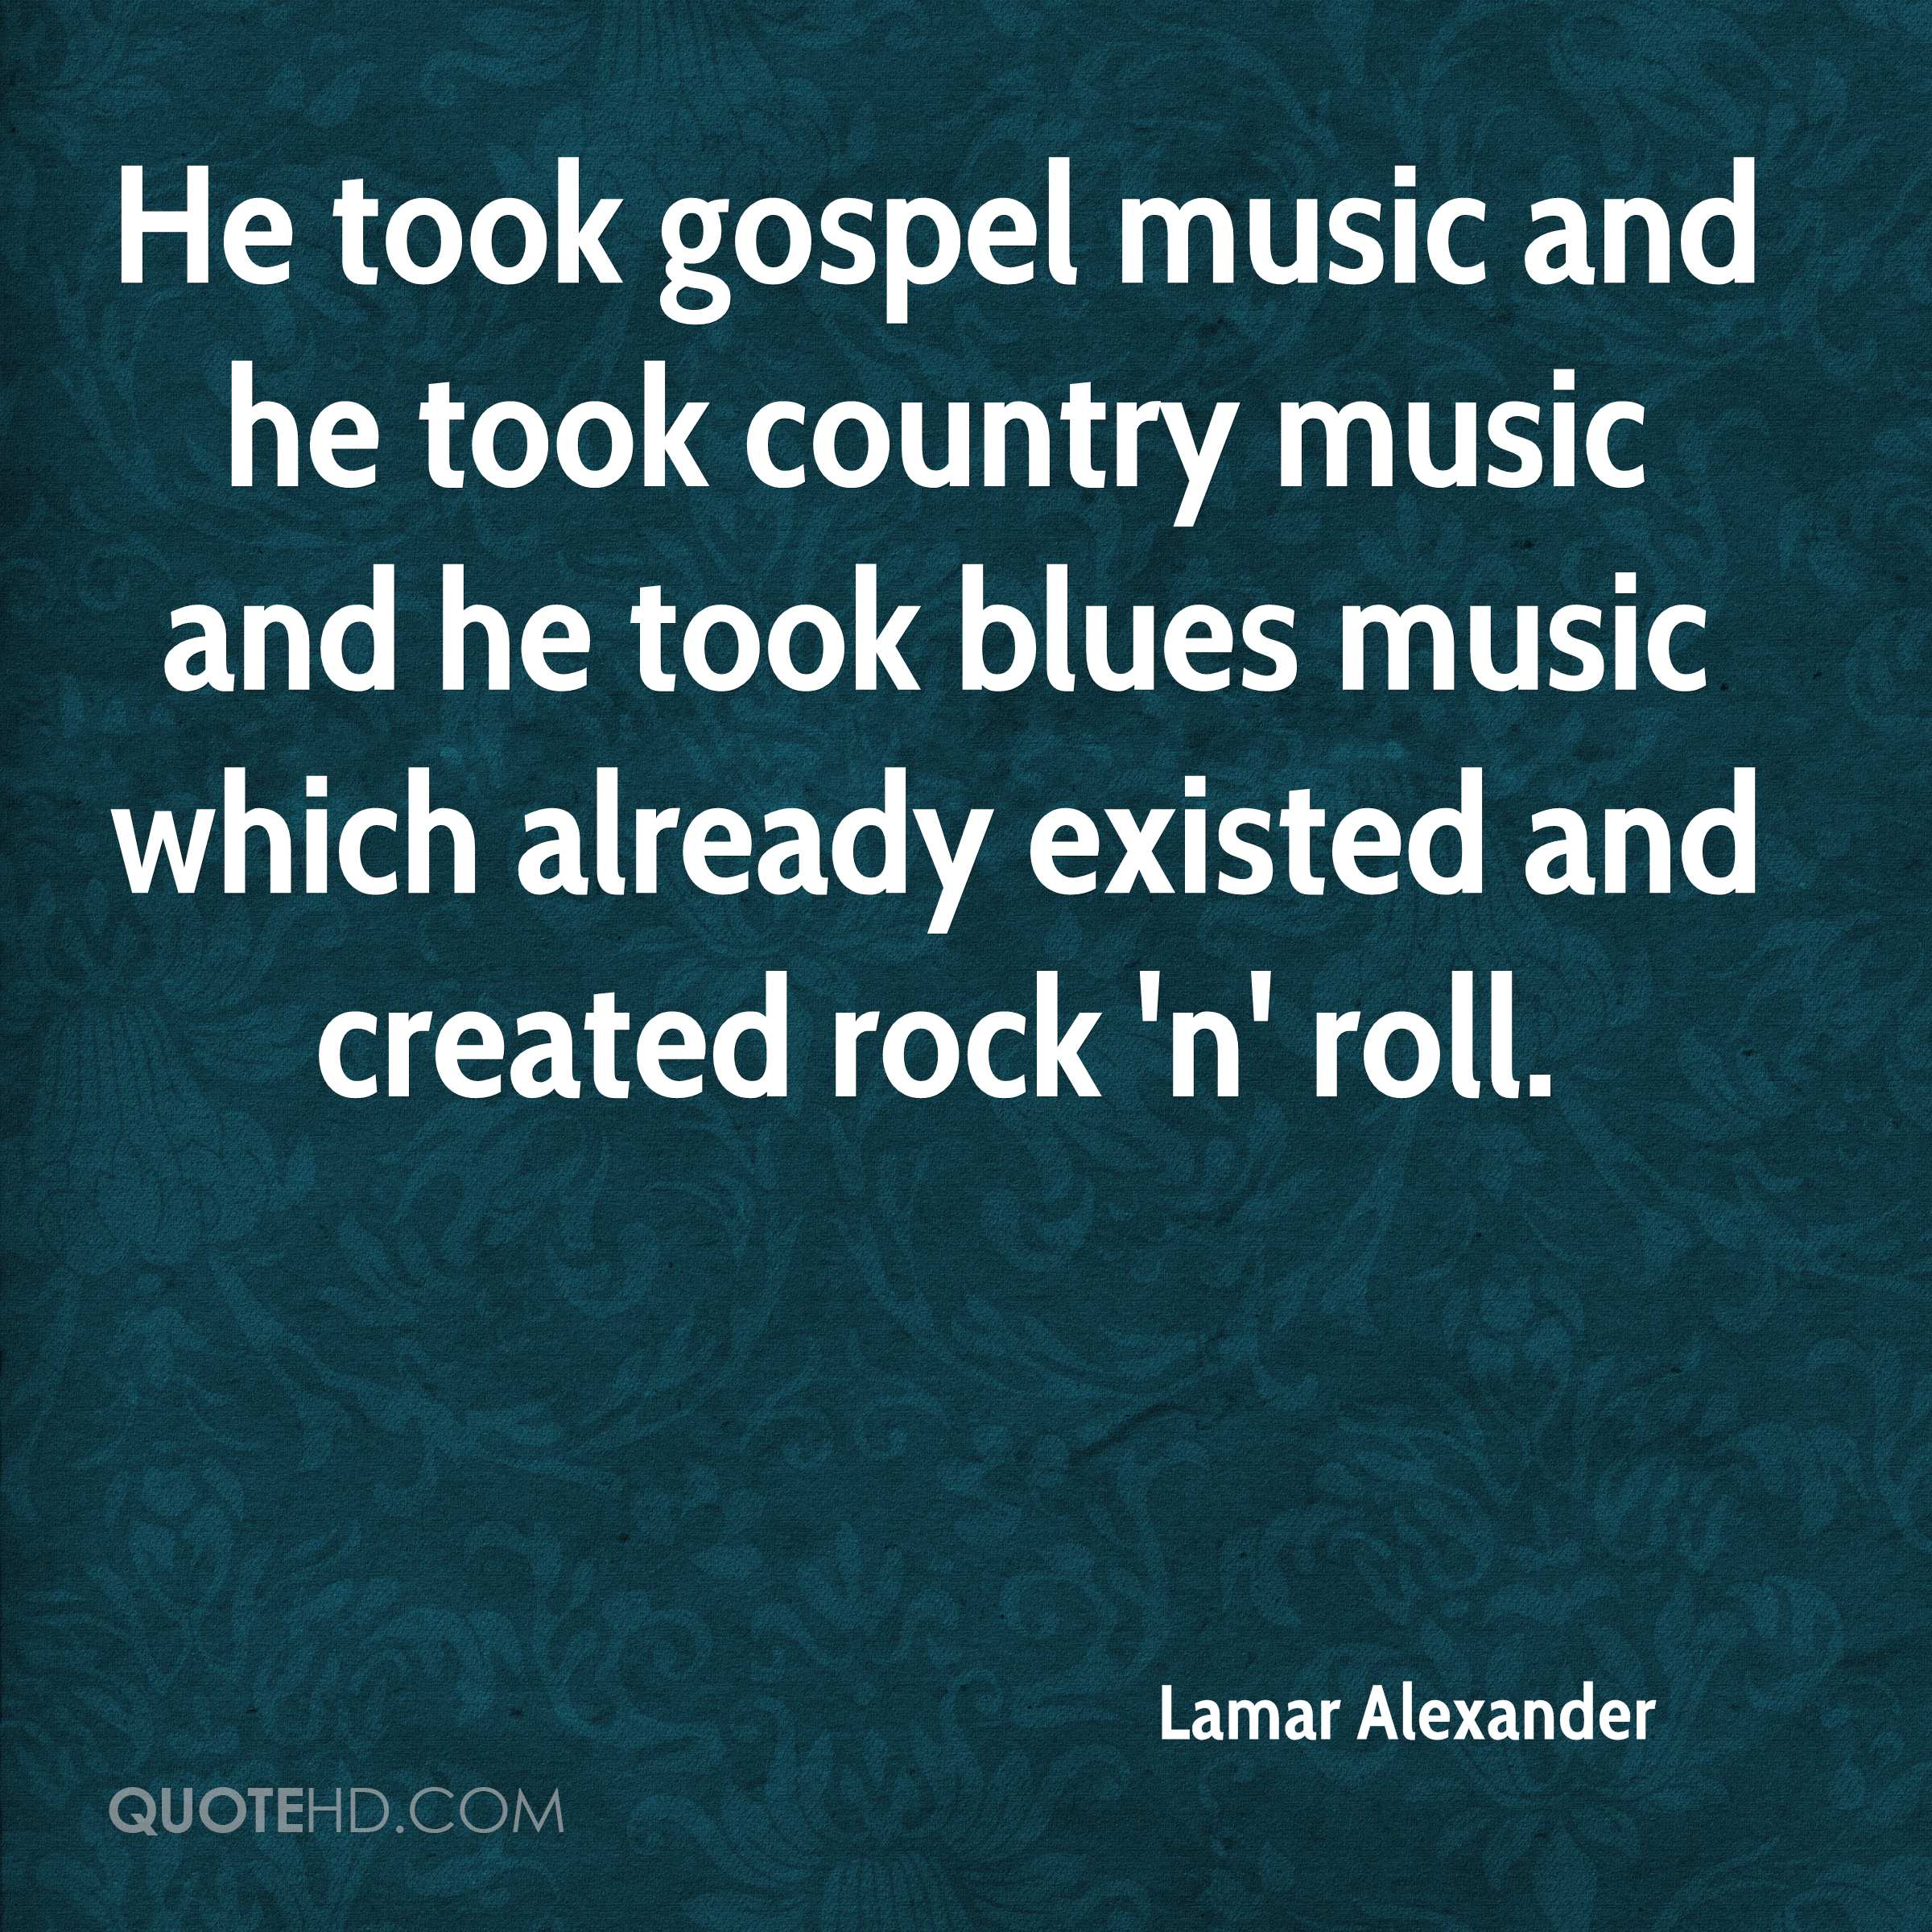 He took gospel music and he took country music and he took blues music which already existed and created rock 'n' roll.